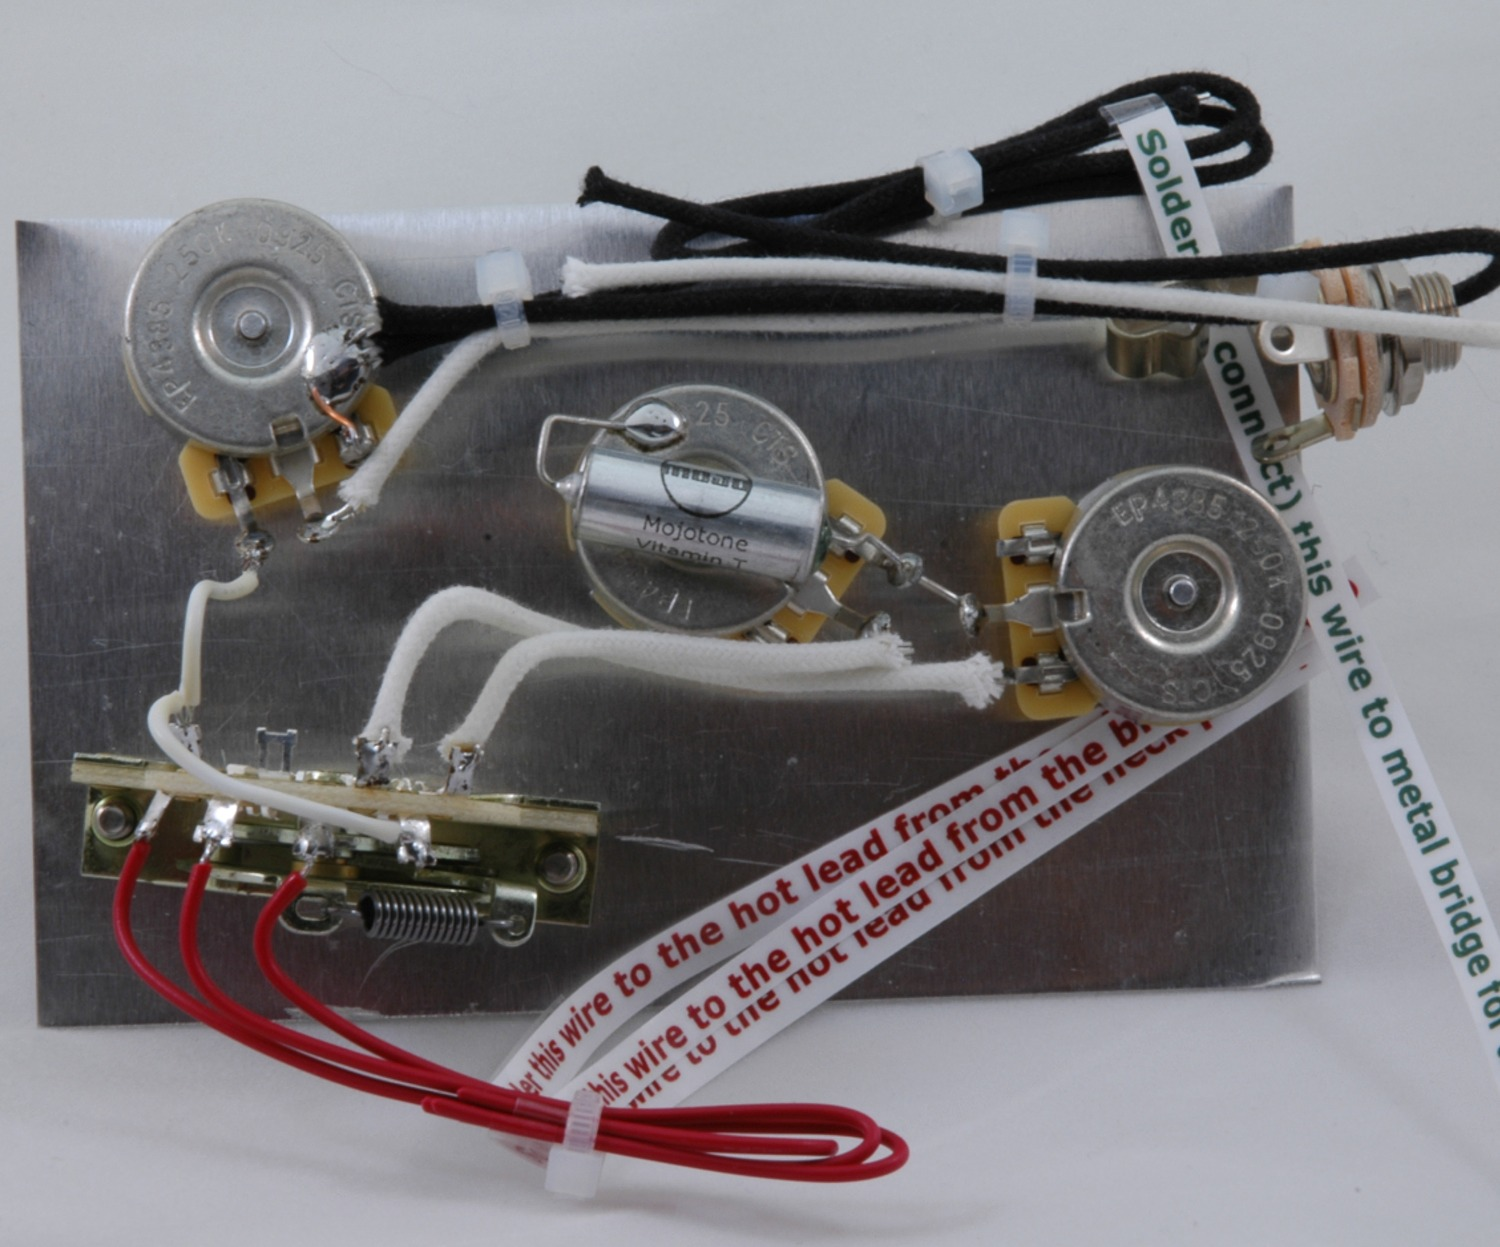 """Stevie Ray Vaughan"" model Stratocaster Wiring Harness"